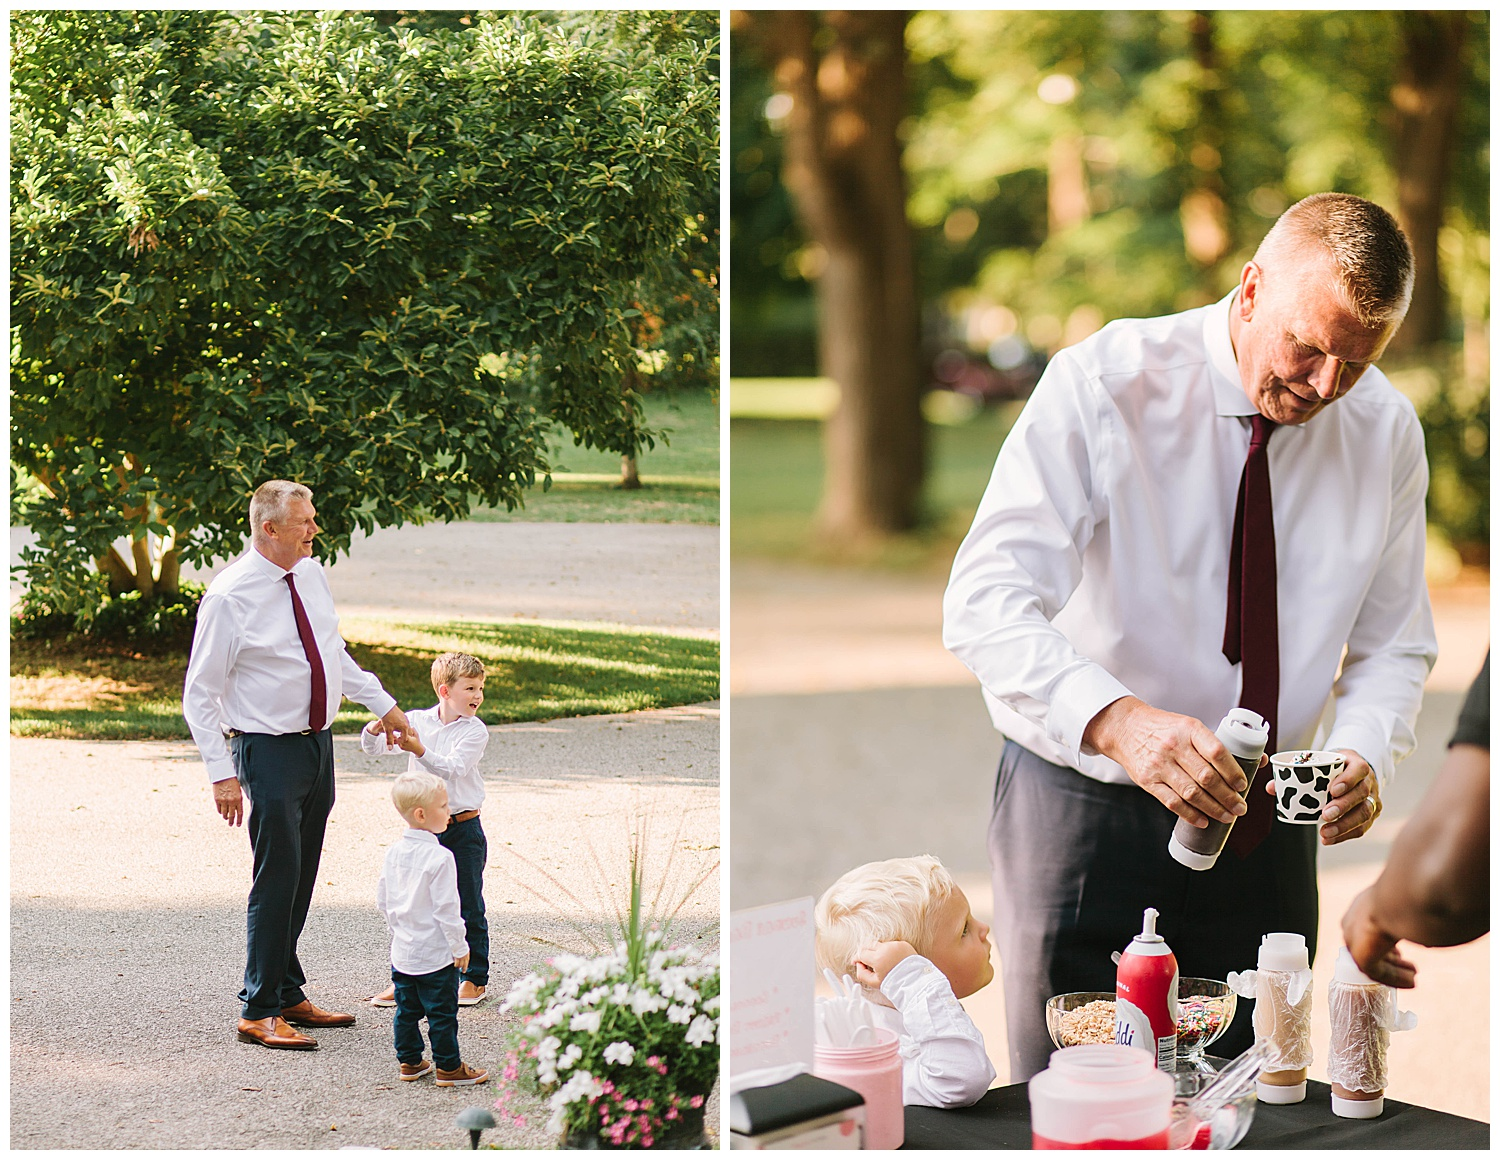 trent.and.kendra.photography.wedding.peterson.dumesnil.house-133.jpg